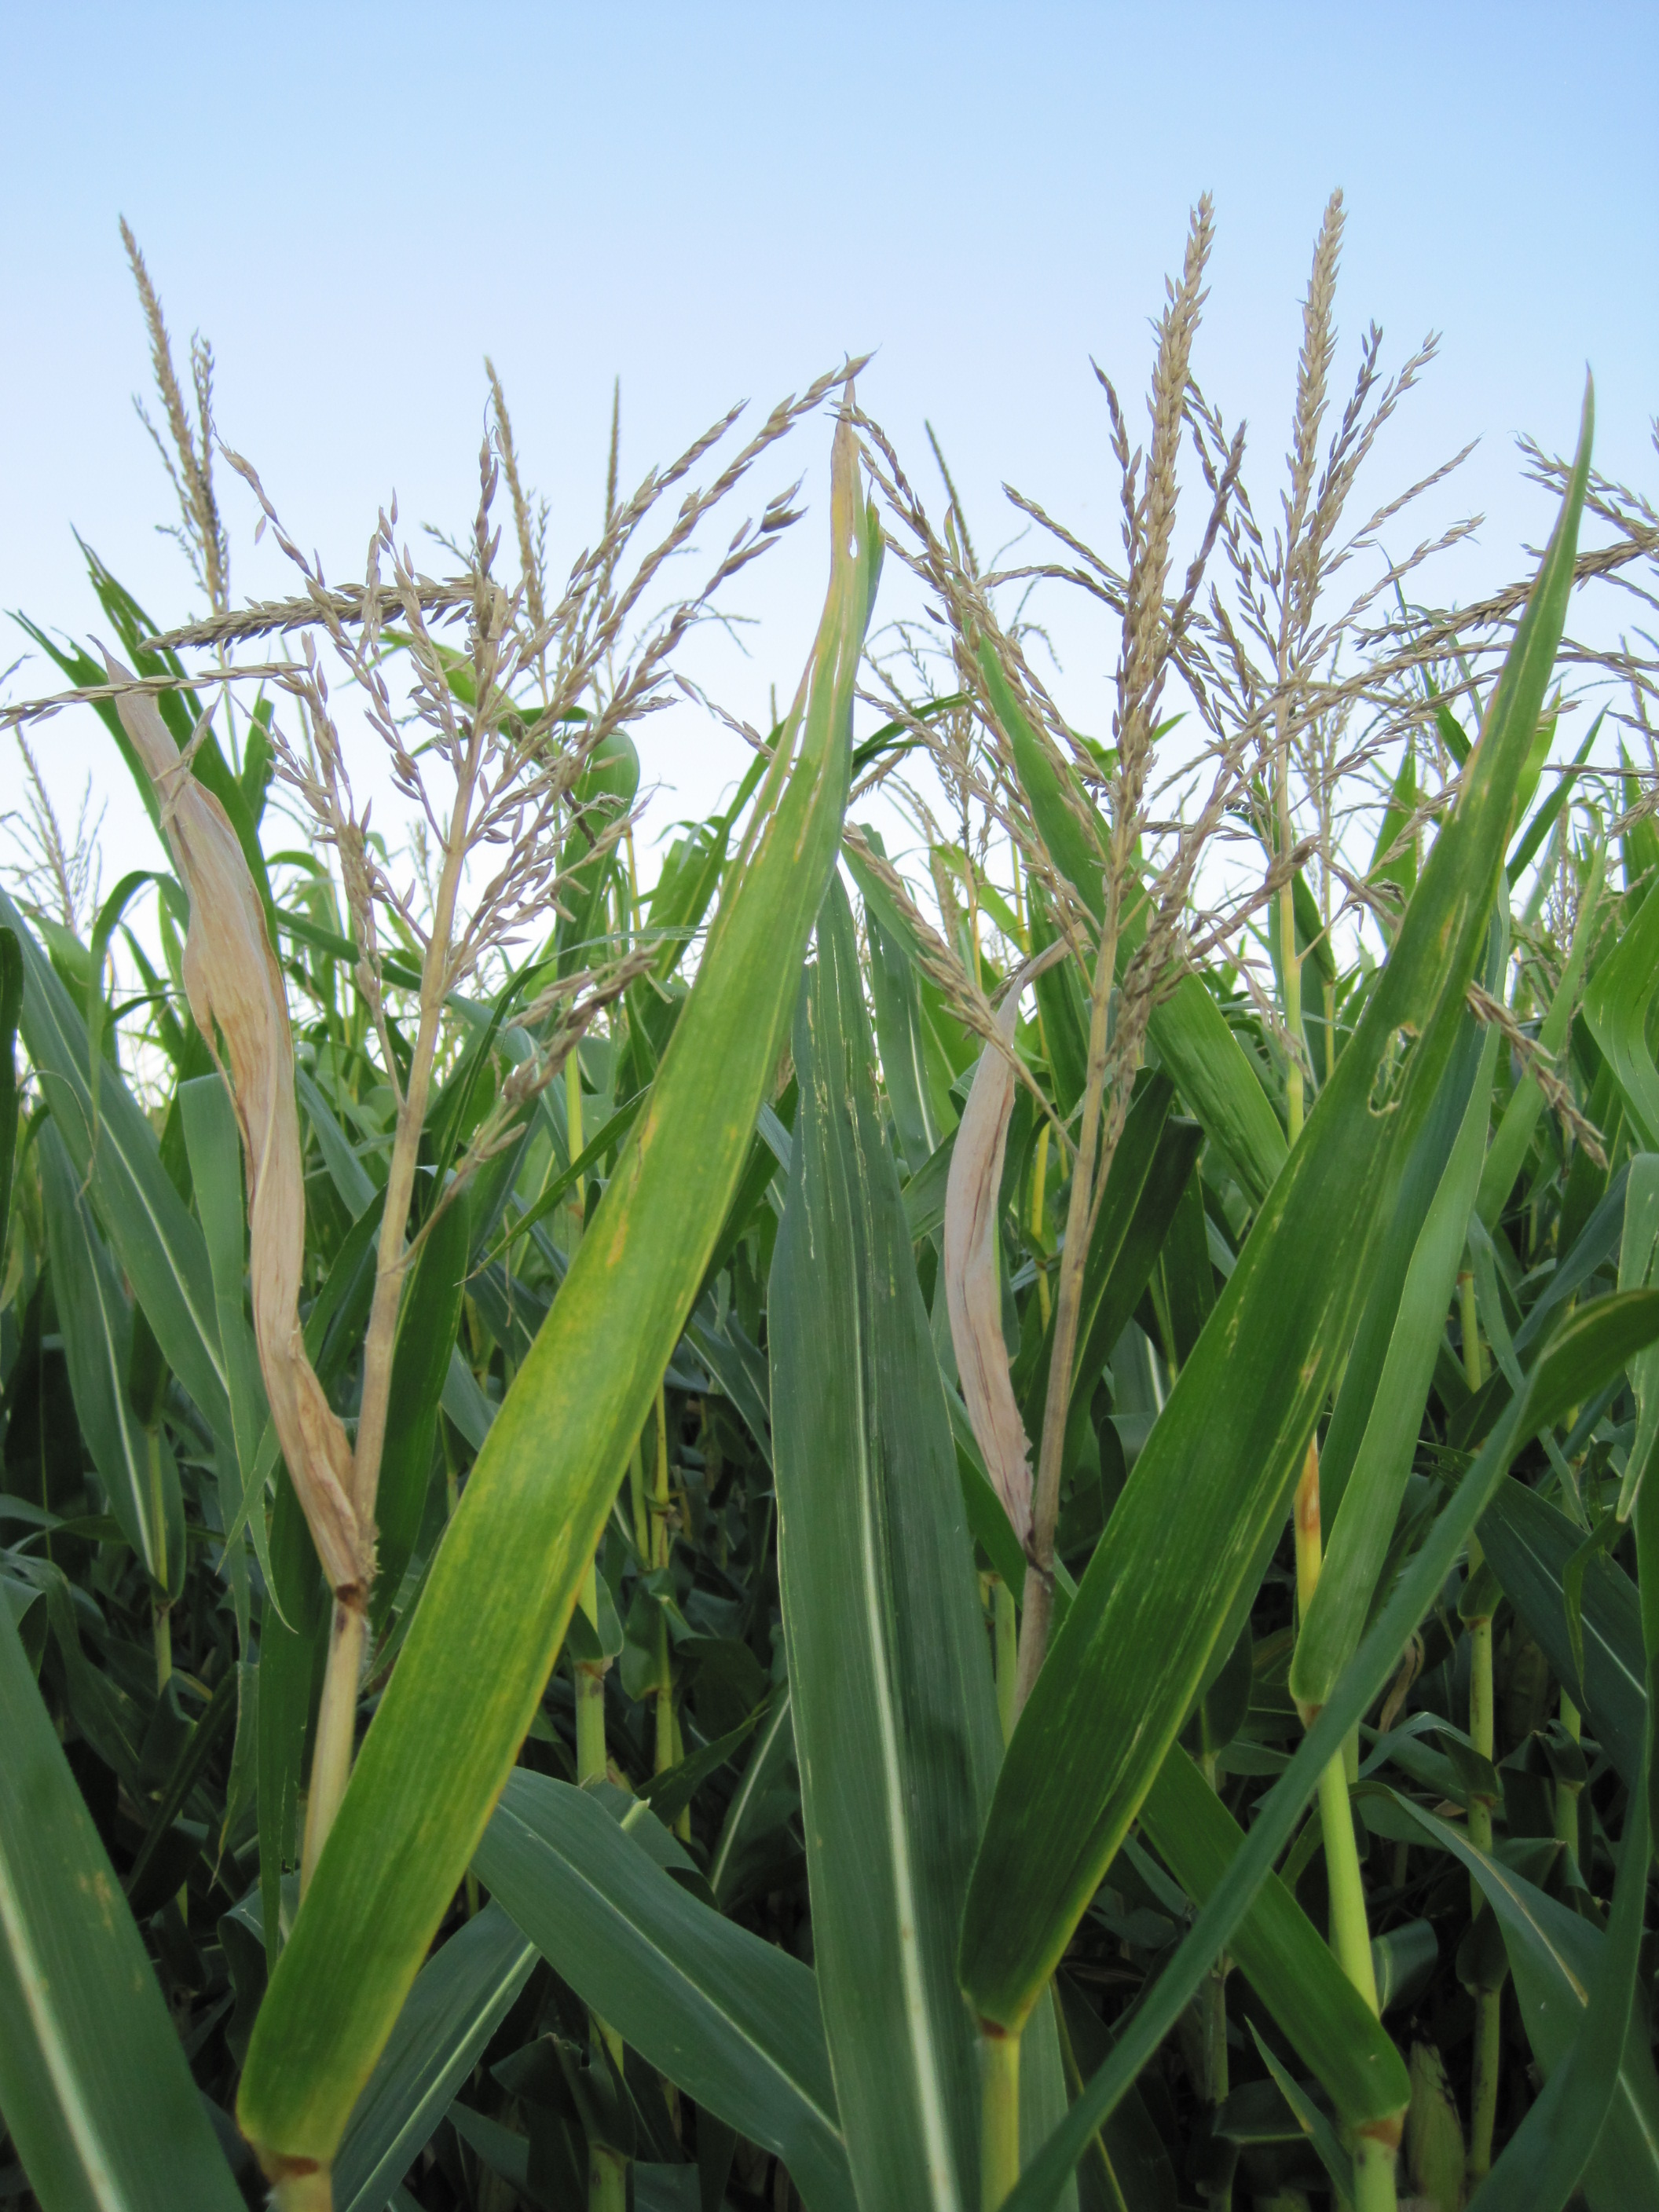 Stalk death above the ear can also be a symptom of anthracnose stalk rot.